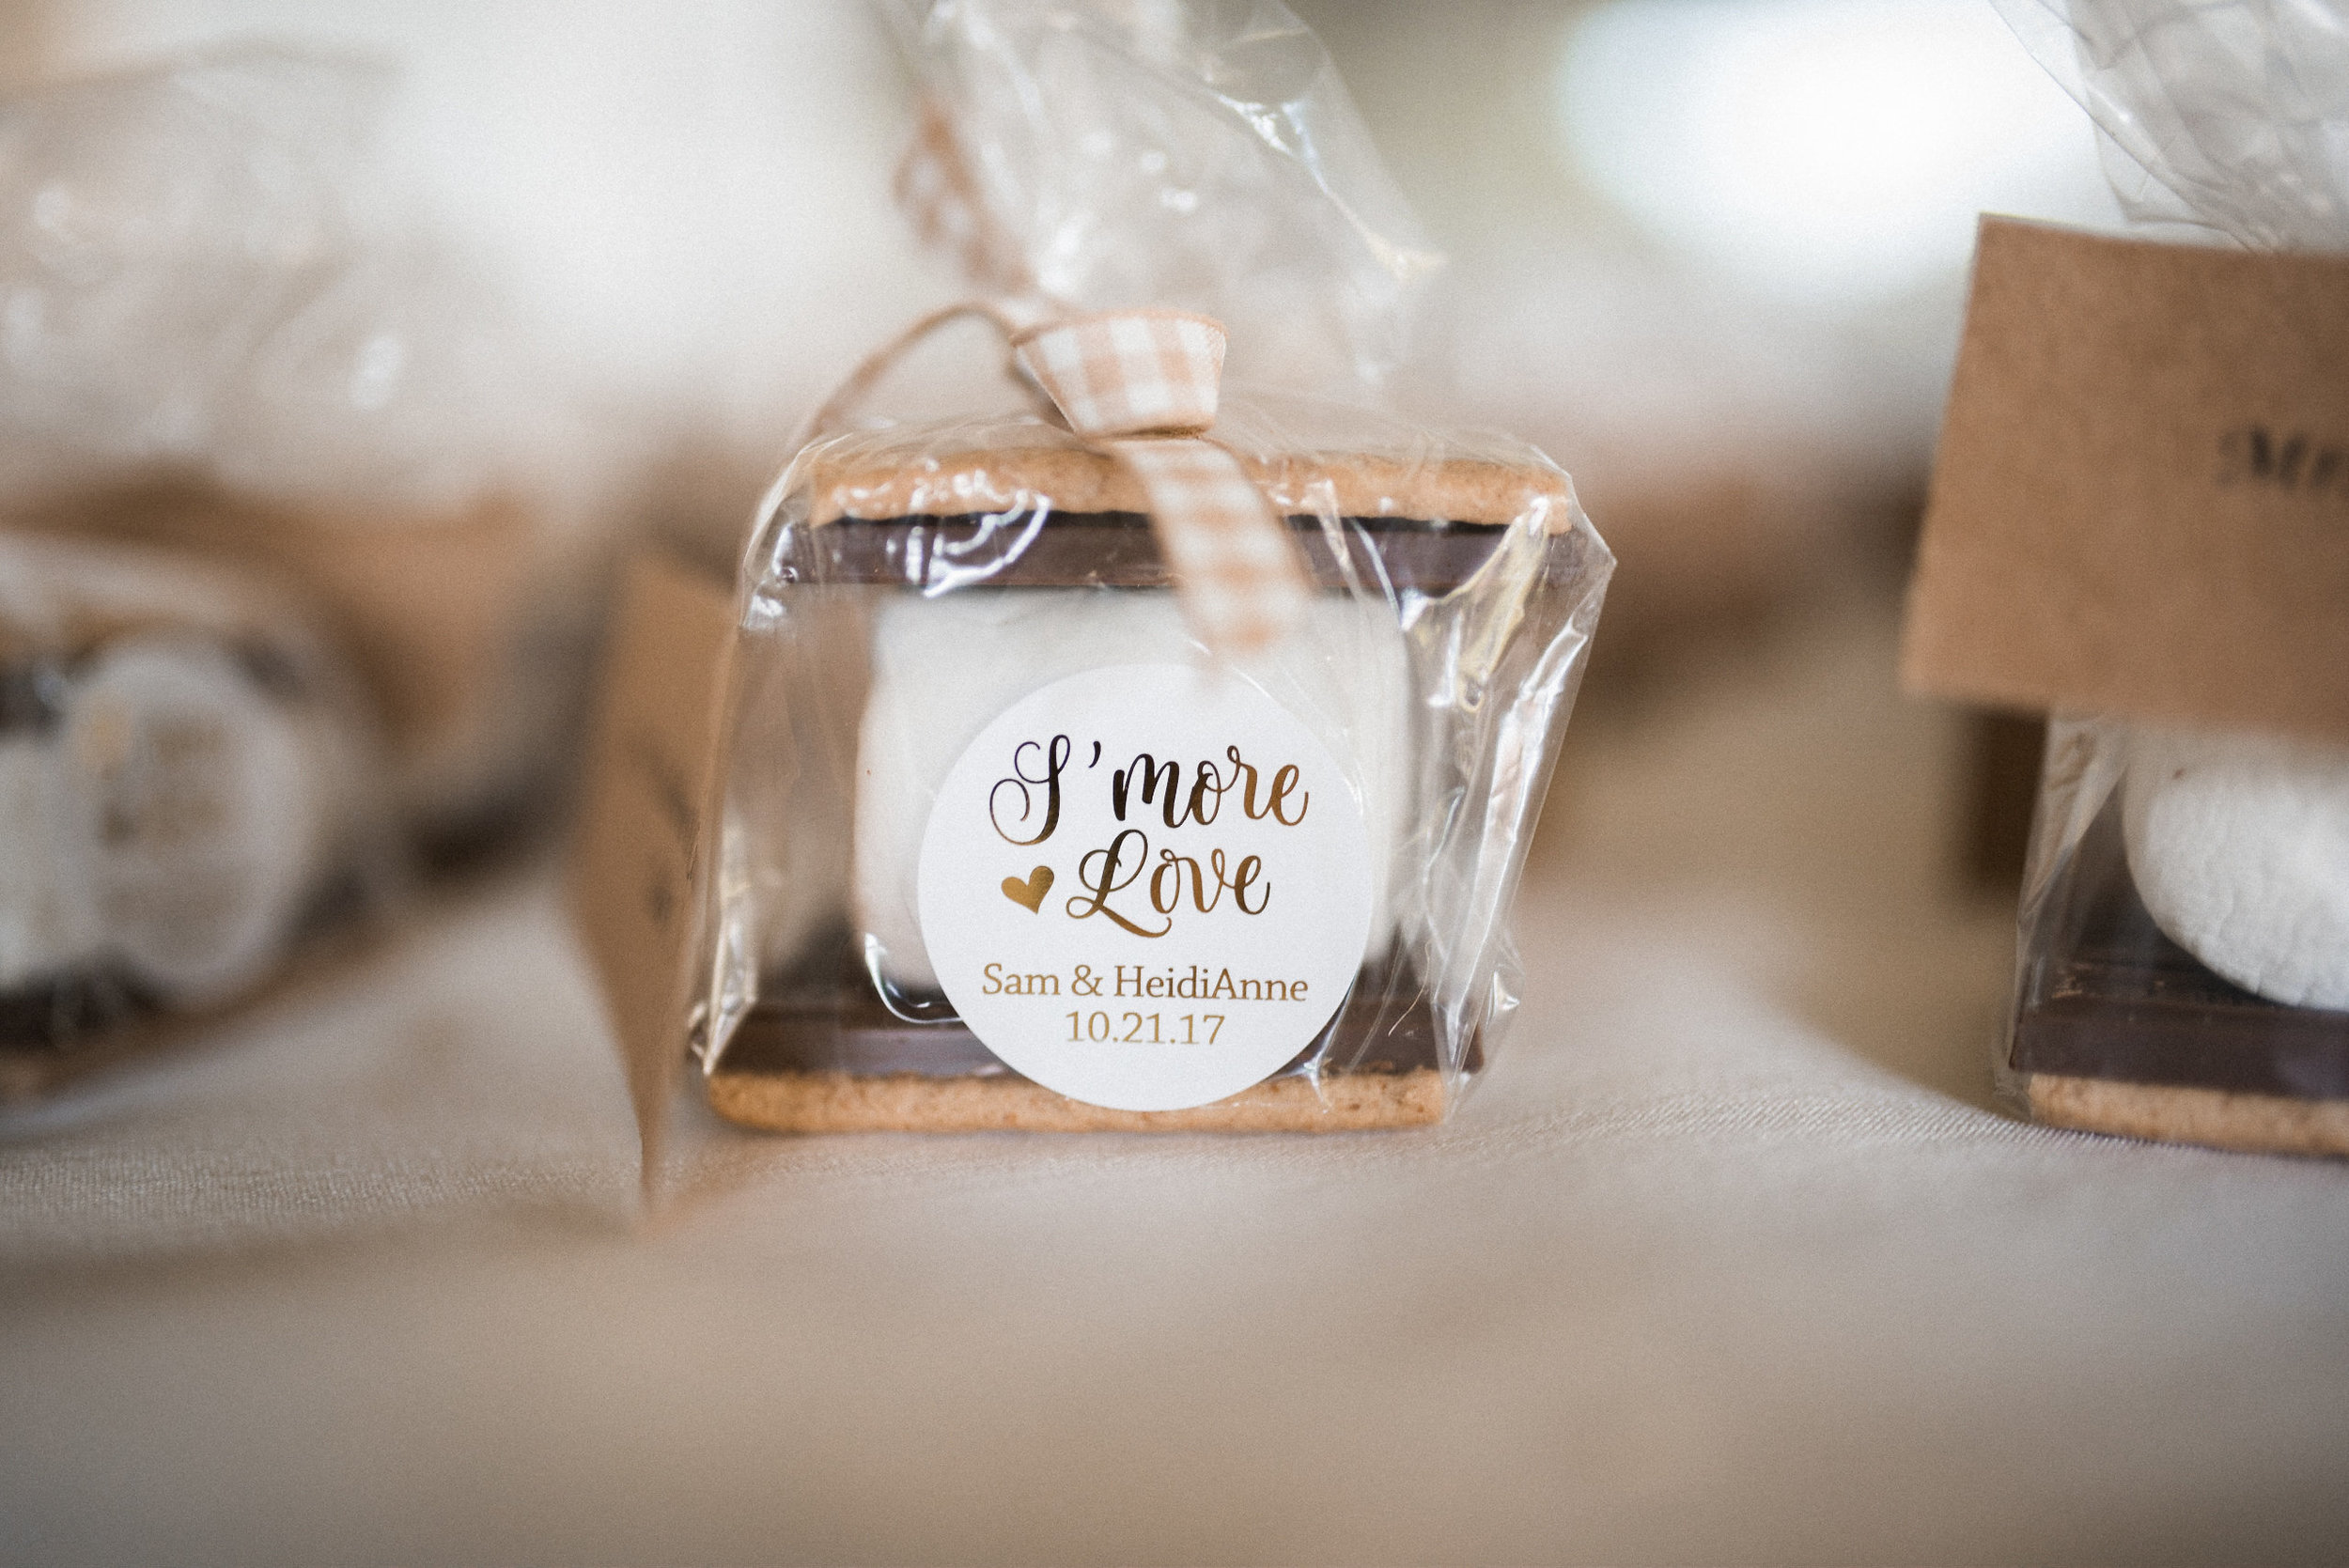 S'more Love wedding favors